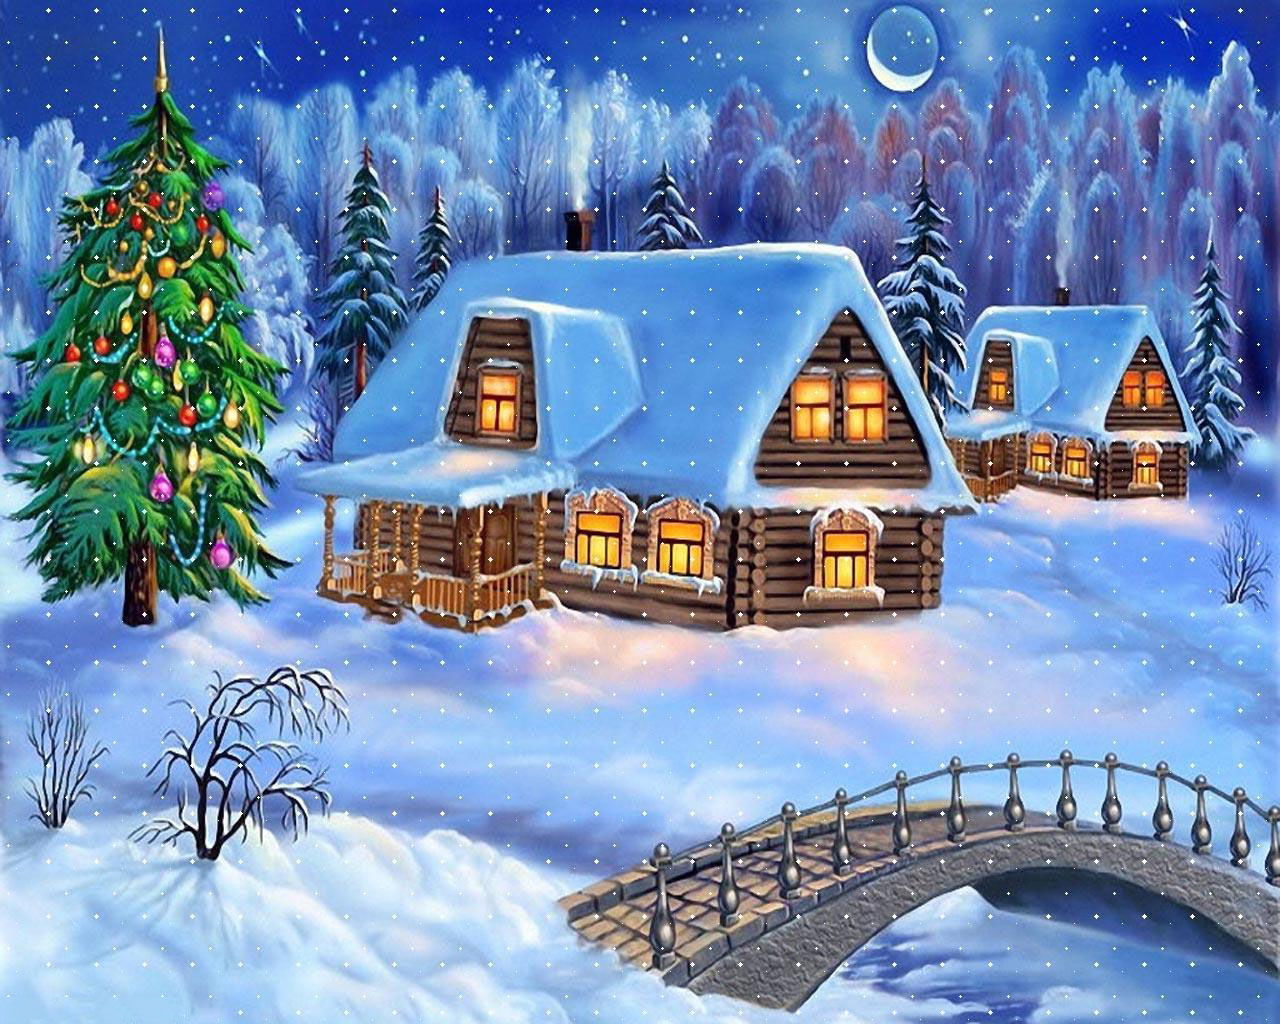 Fond ecran de noel paysage fonds d 39 cran hd for Wallpaper gratuit